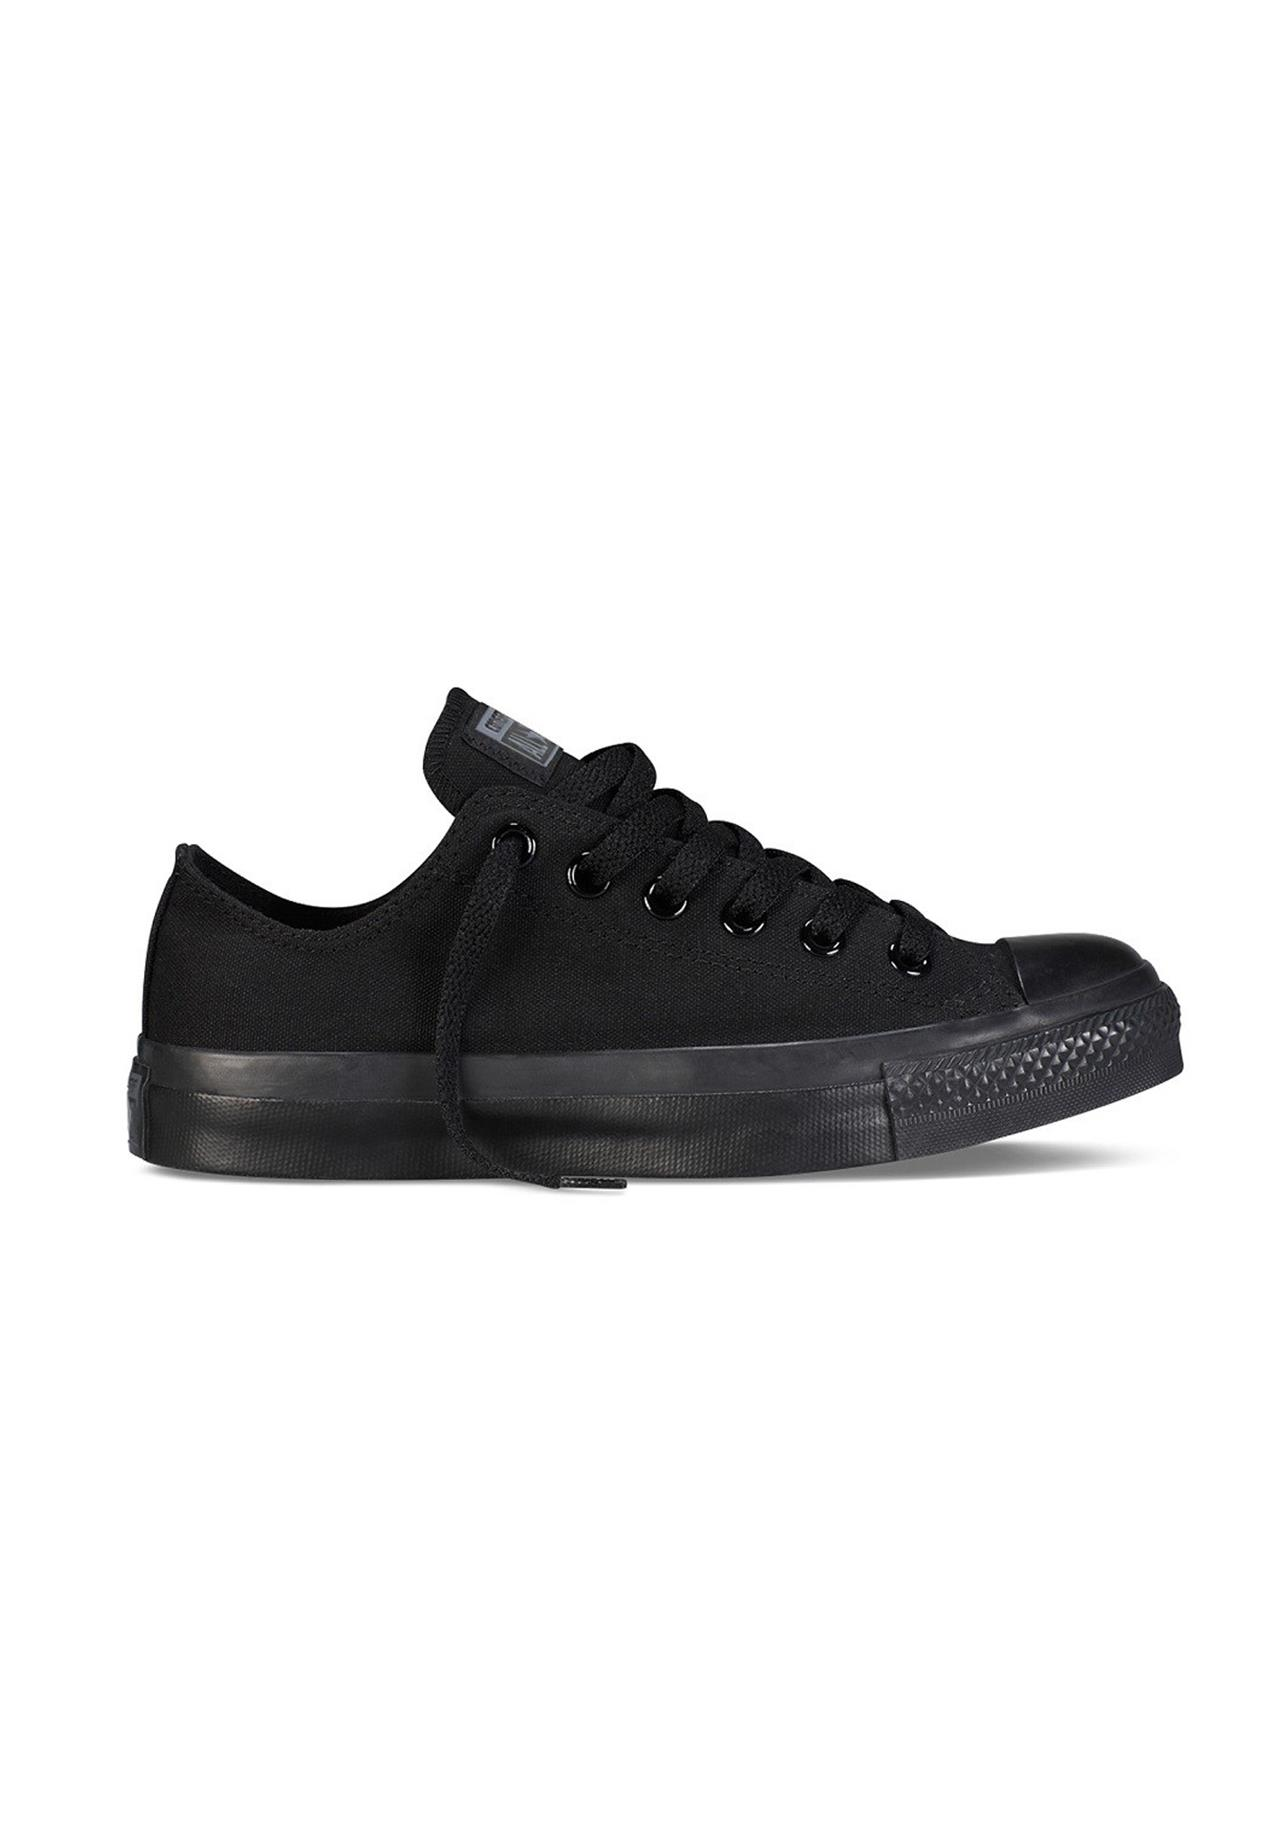 Converse All star con suela negra